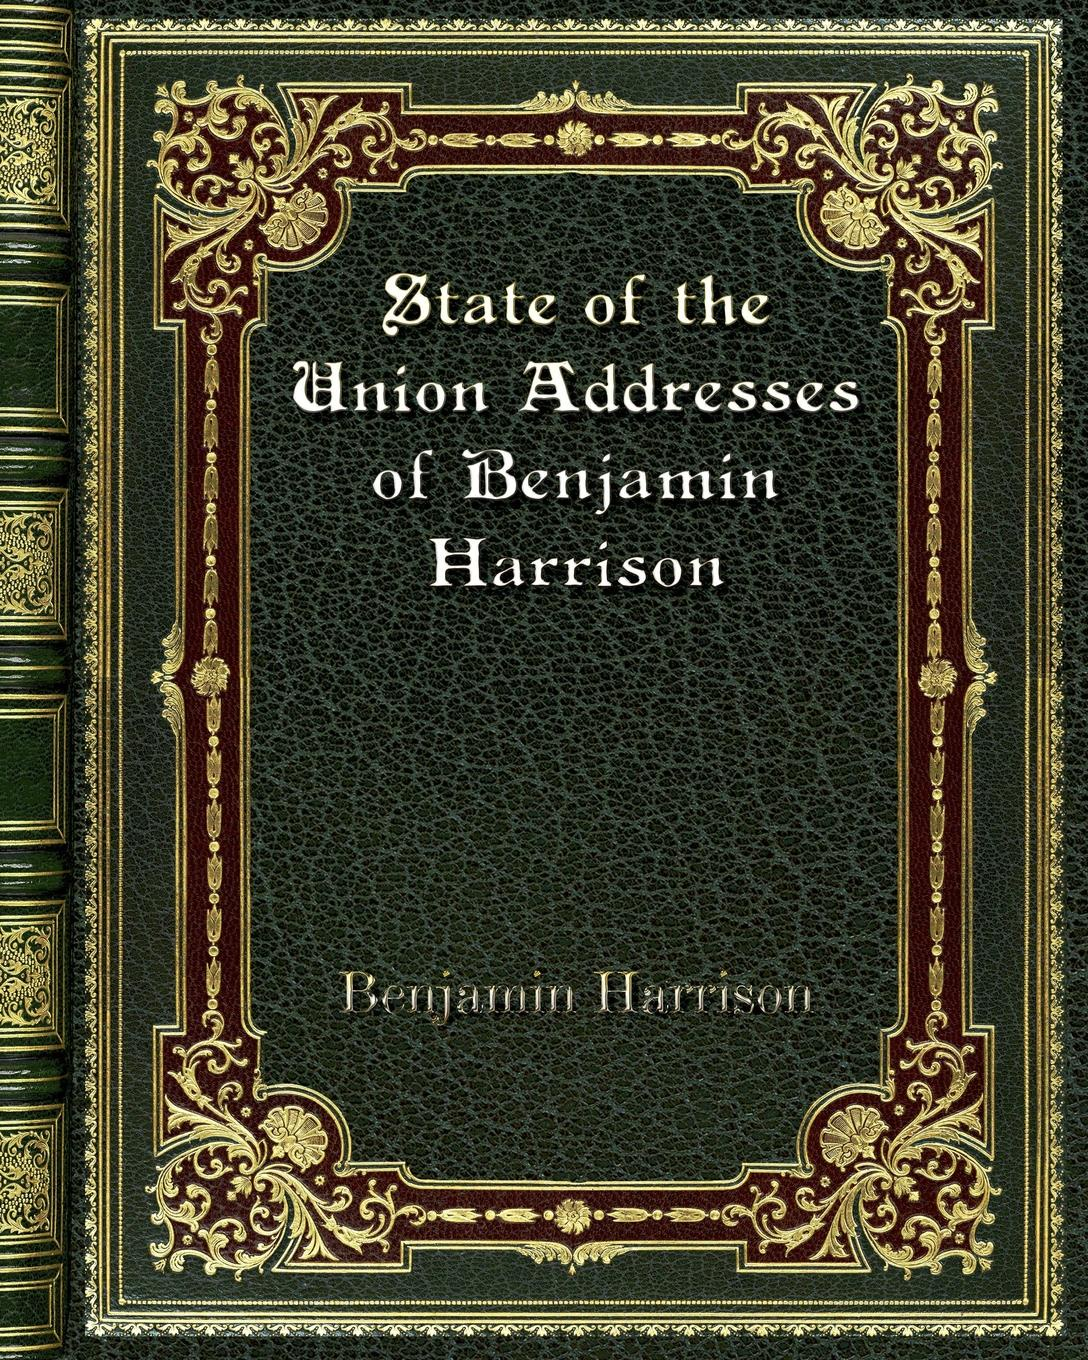 Benjamin Harrison State of the Union Addresses of Benjamin Harrison harrison harrison harrison s british classics